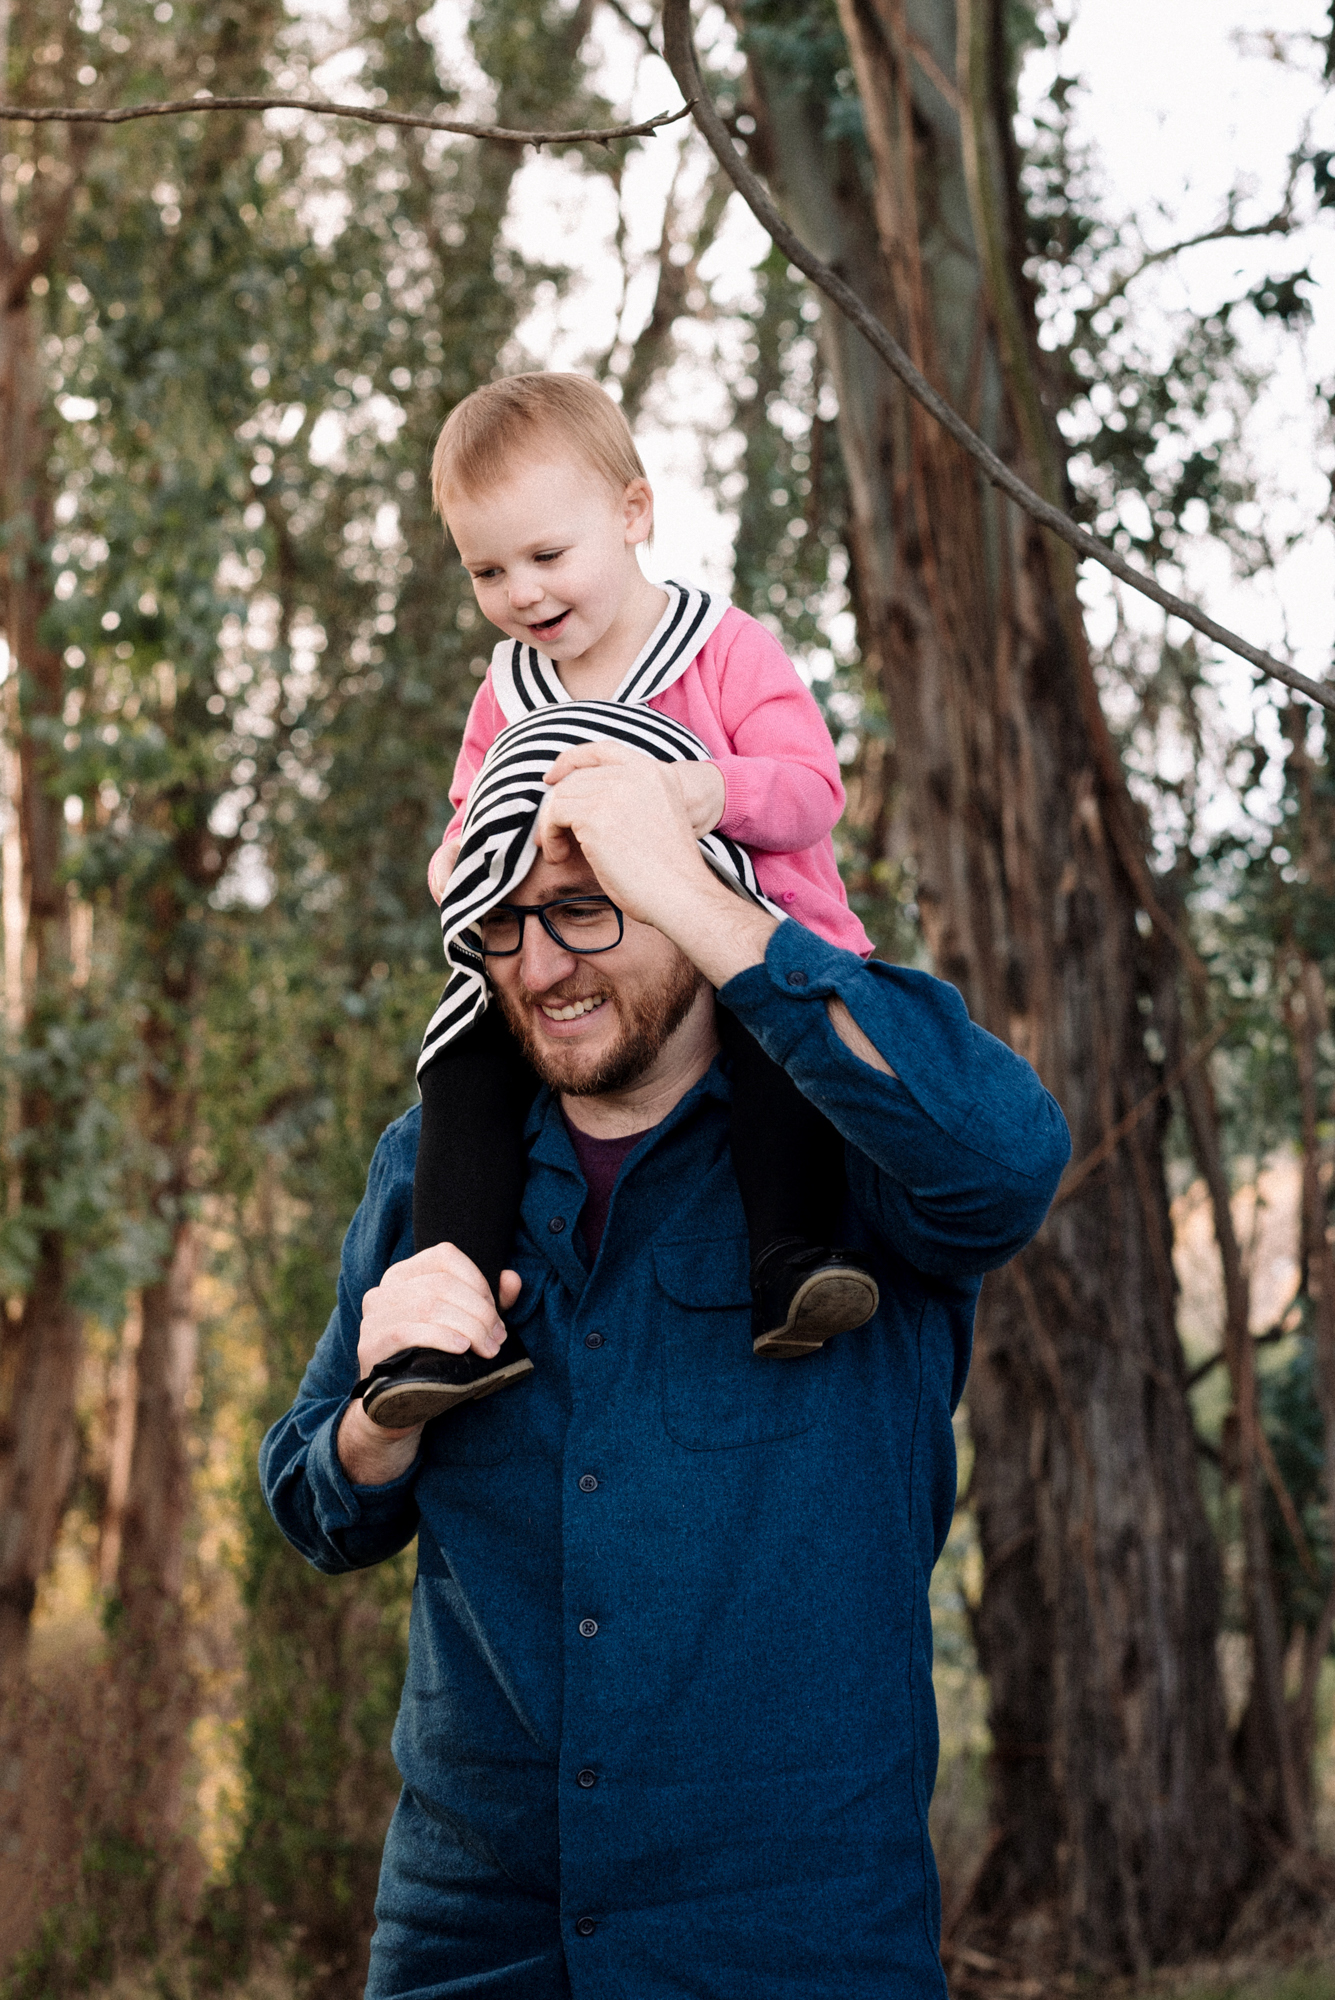 Daddy and daughter time during the family portrait photography session